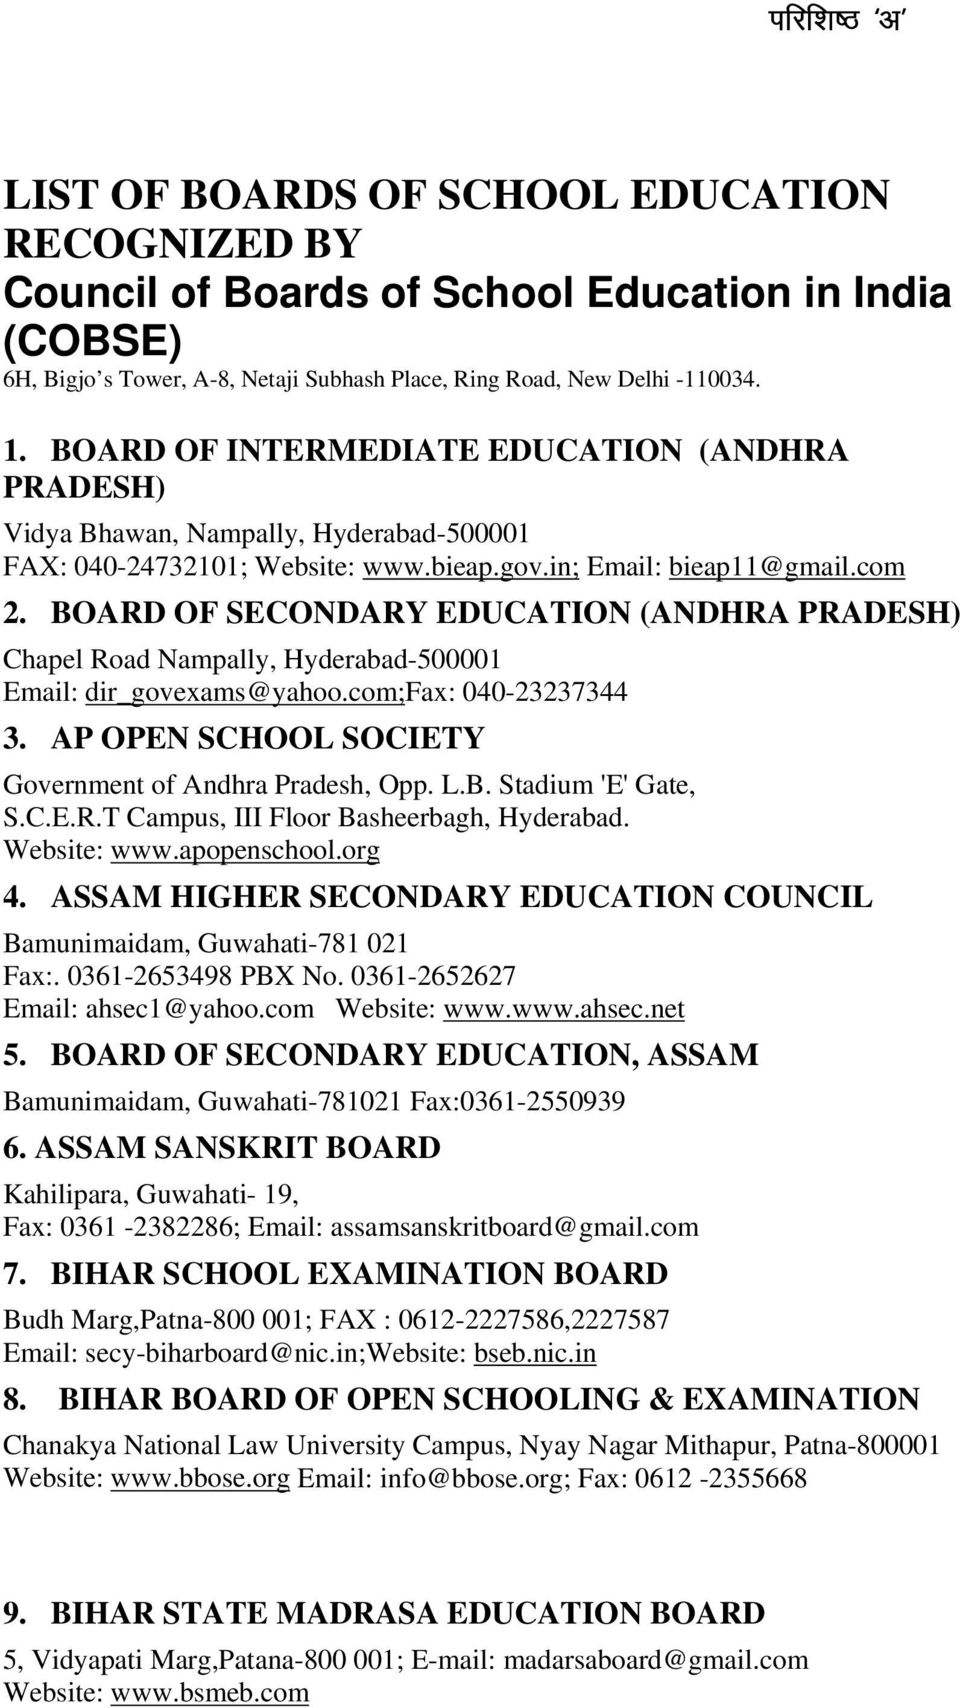 BOARD OF SECONDARY EDUCATION (ANDHRA PRADESH) Chapel Road Nampally, Hyderabad-500001 Email: dir_govexams@yahoo.com;fax: 040-23237344 3. AP OPEN SCHOOL SOCIETY Government of Andhra Pradesh, Opp. L.B. Stadium 'E' Gate, S.